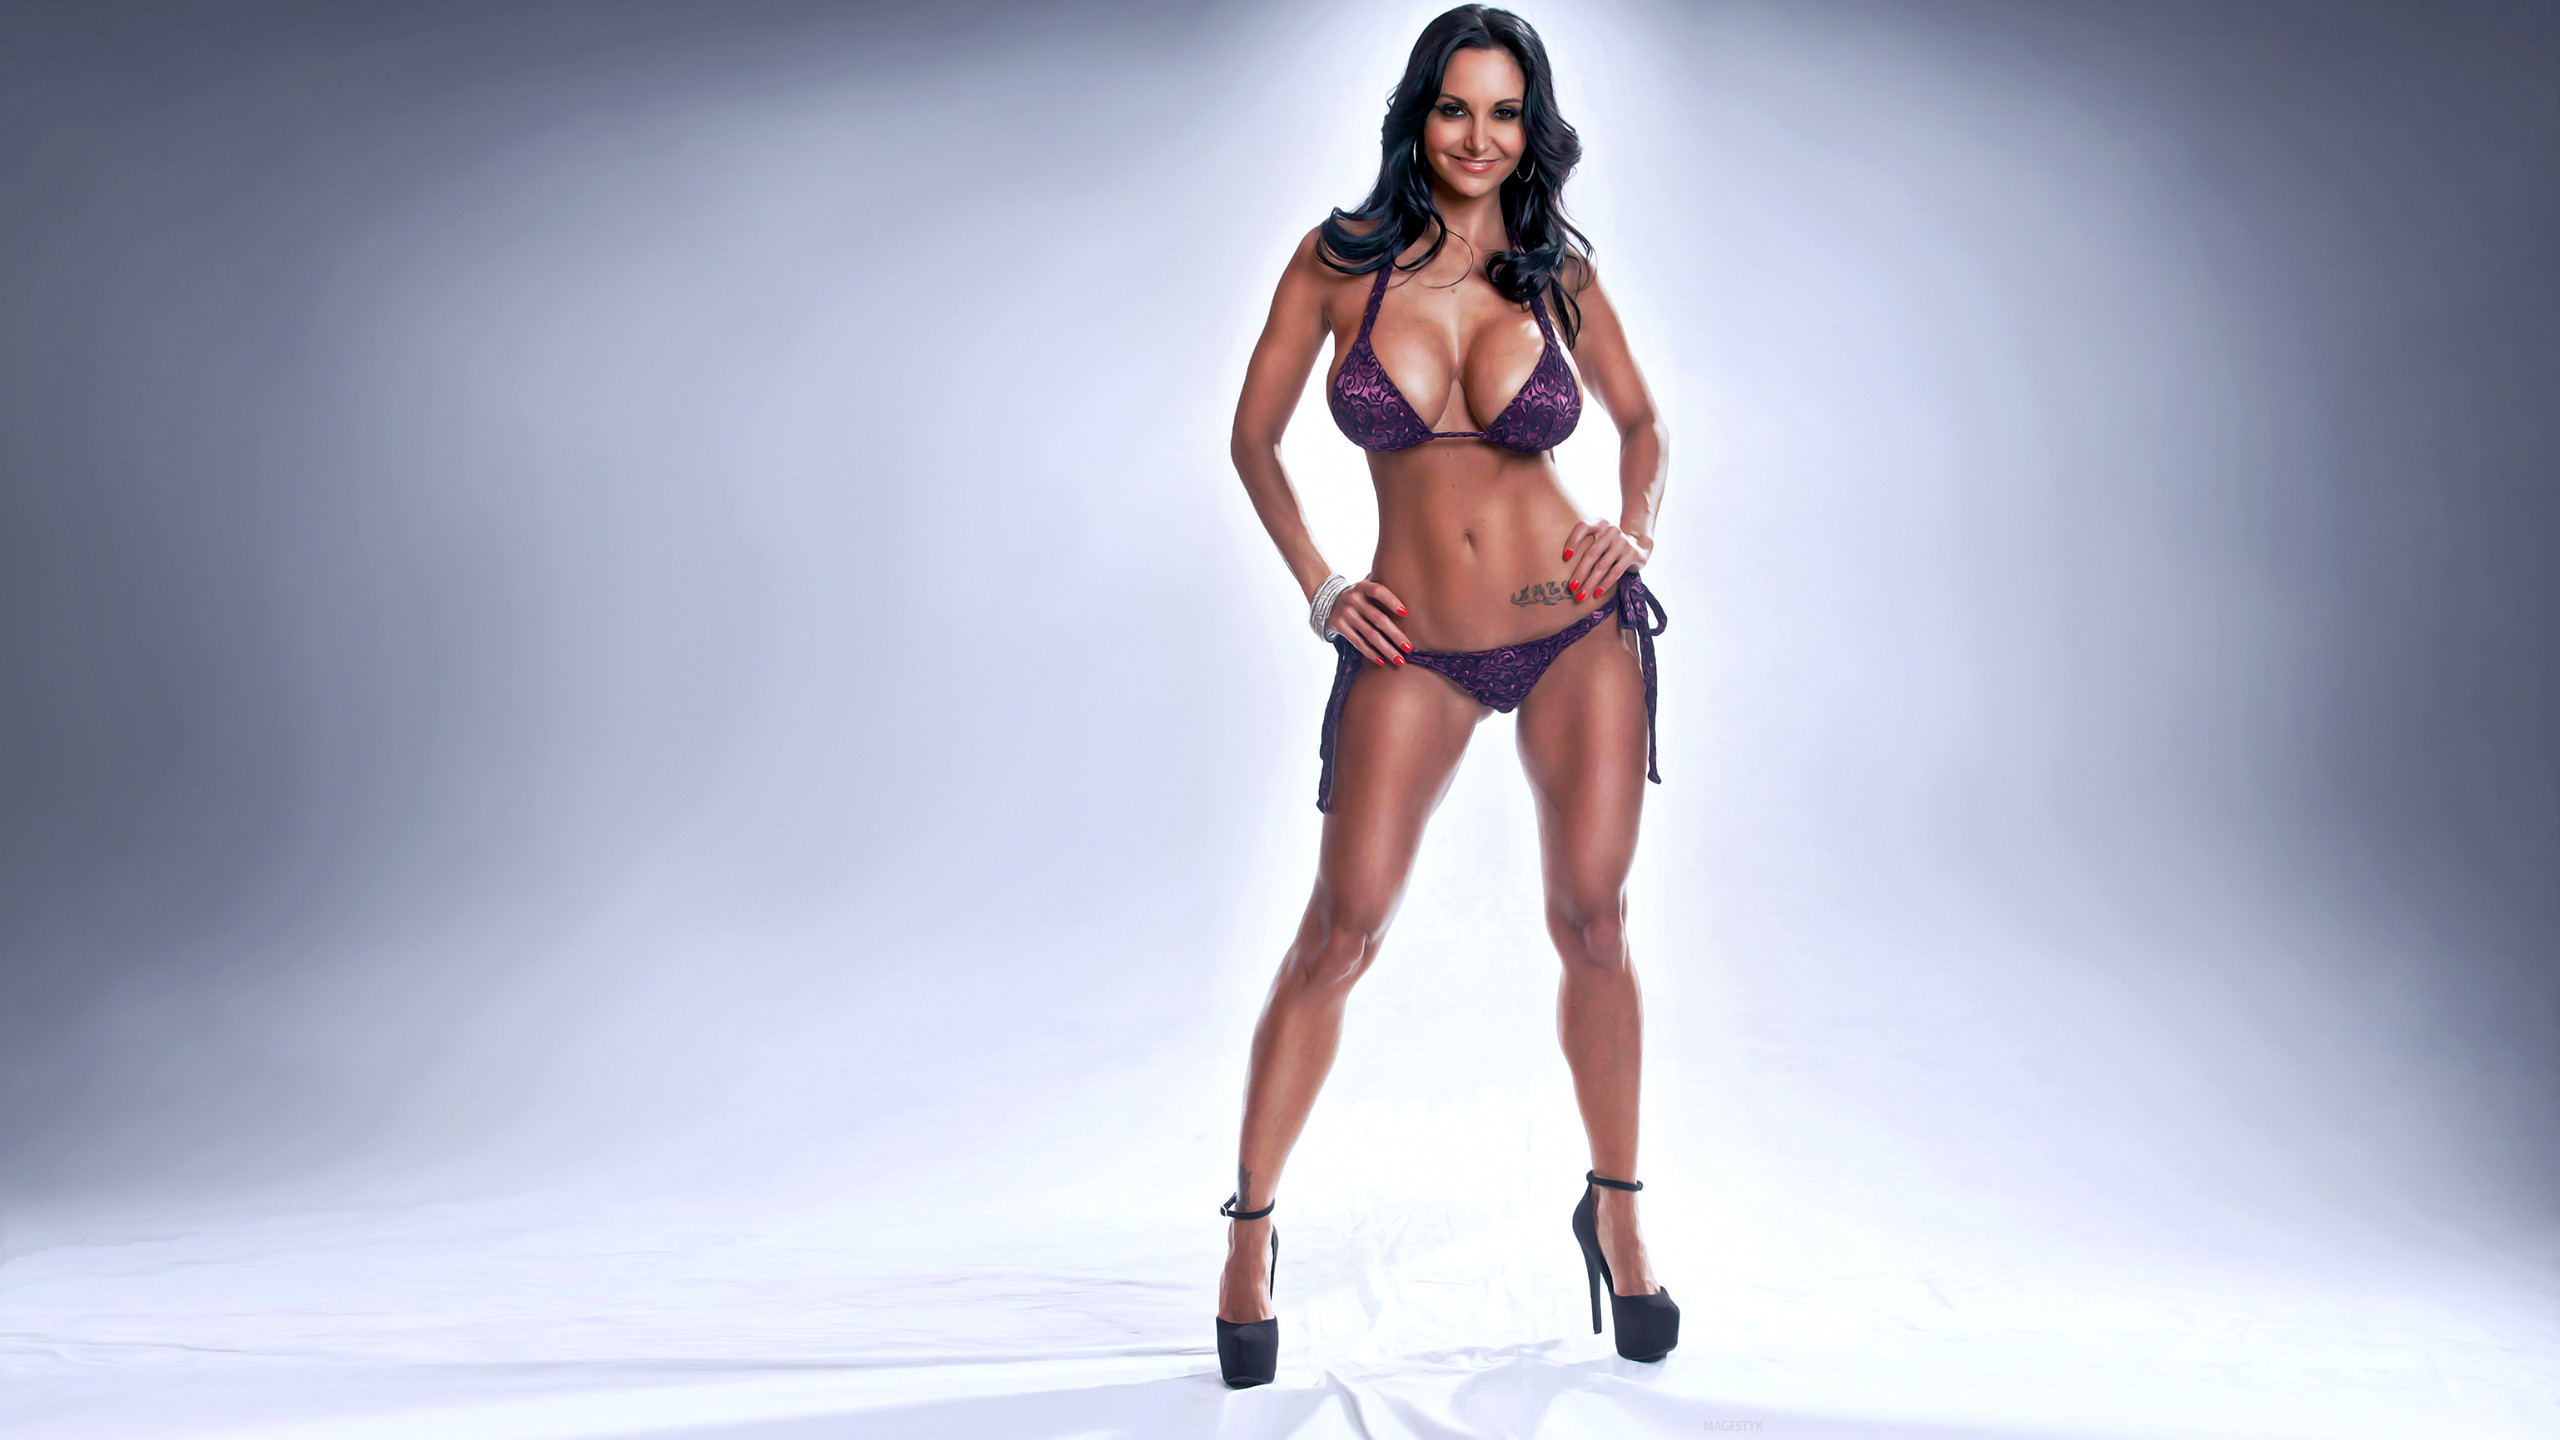 Ava Addams Free Video